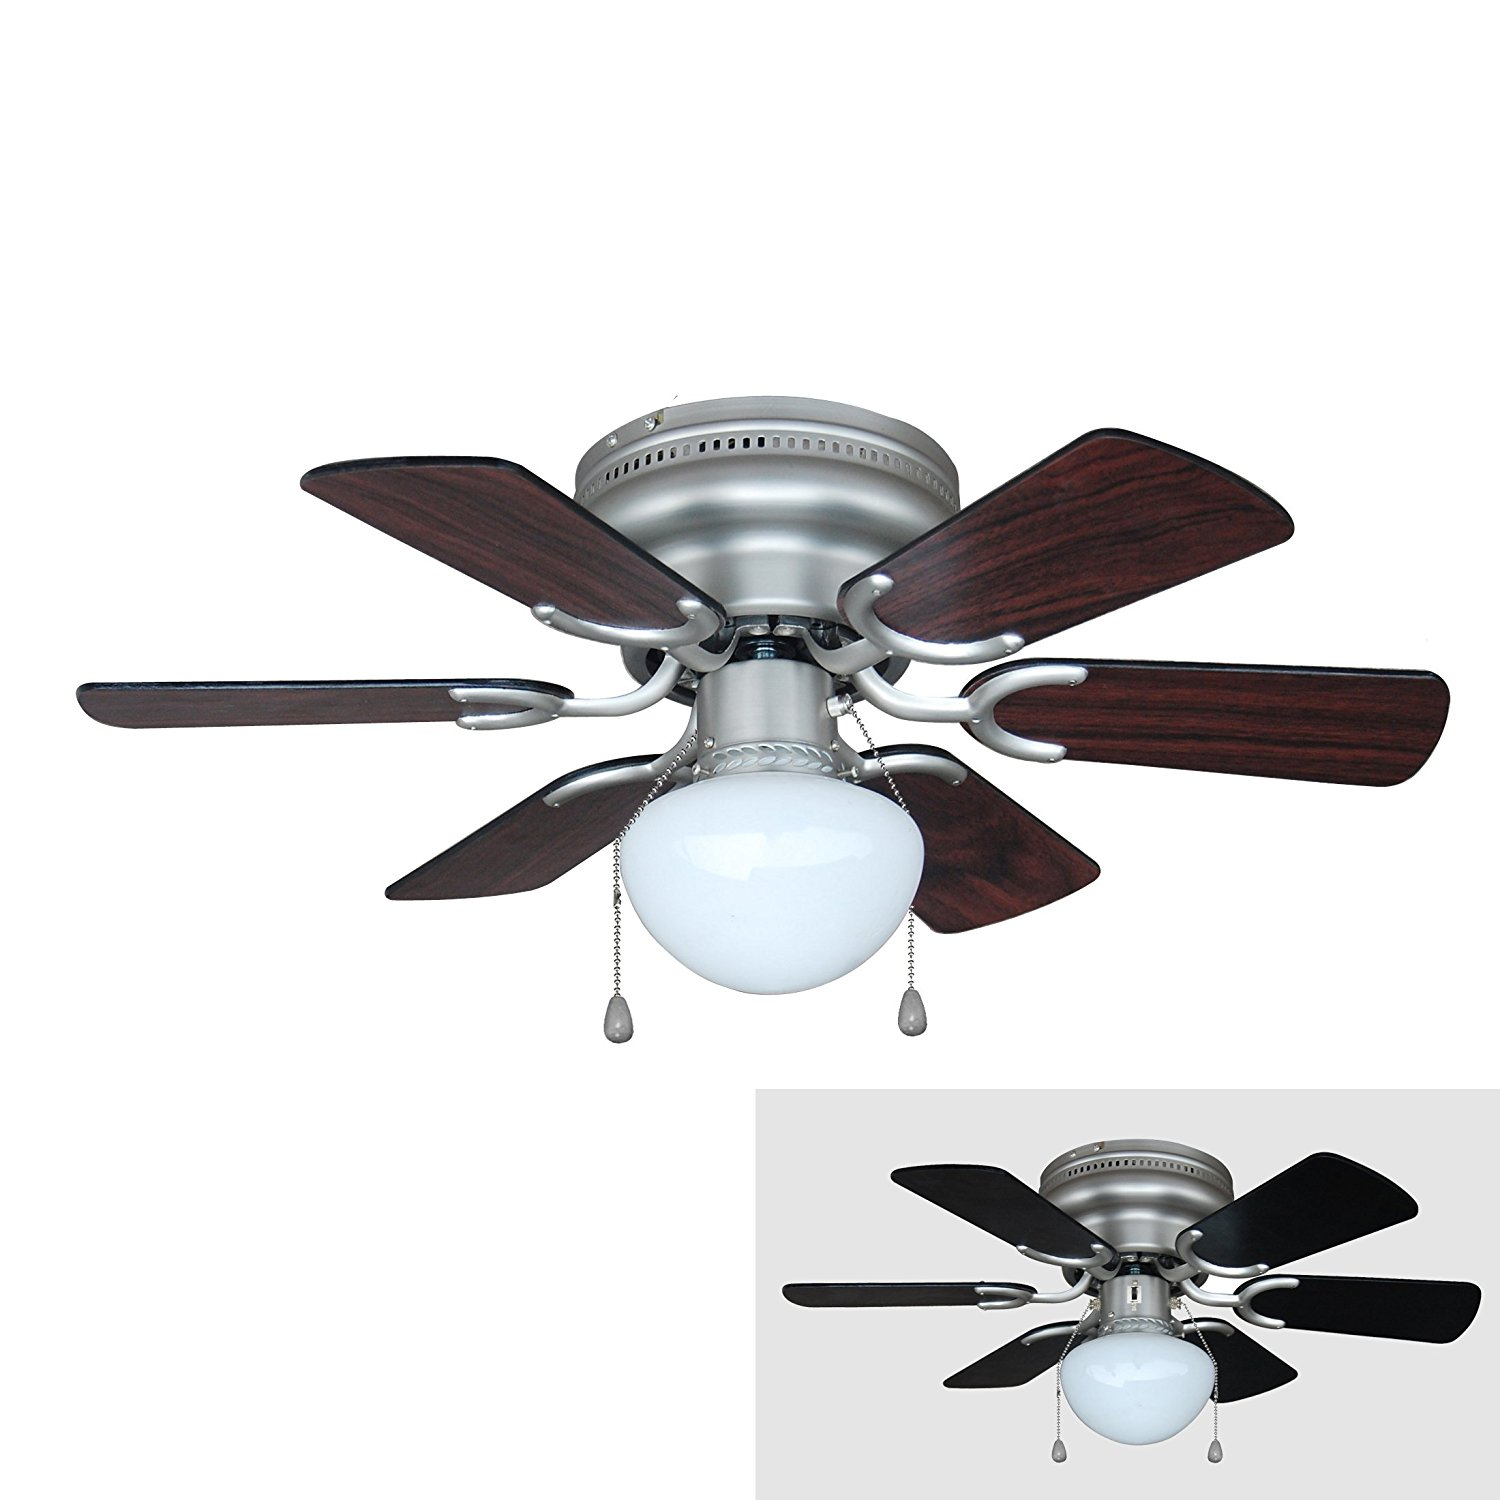 Black Ceiling Fan With Light Elegance Look With Great